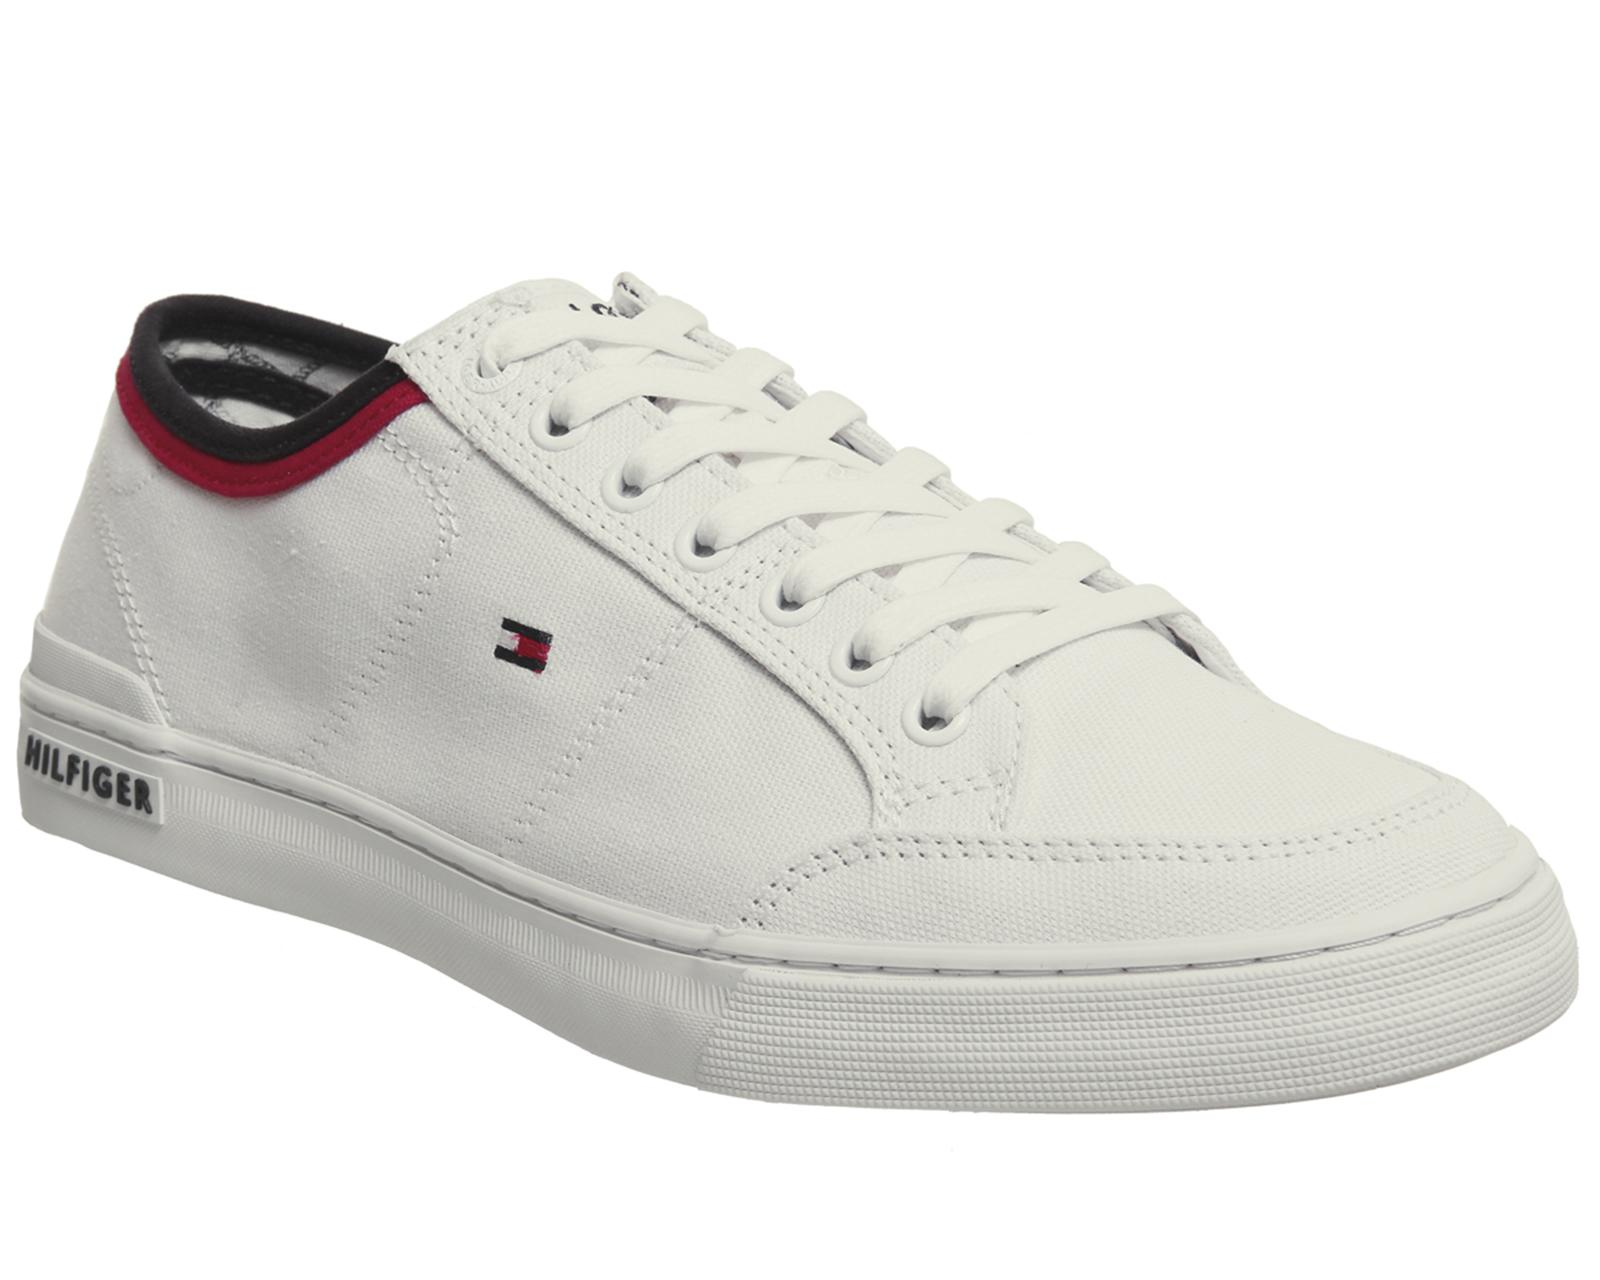 Mens Lightweight Corporate Low-Top Sneakers, Midnight Blue Tommy Hilfiger